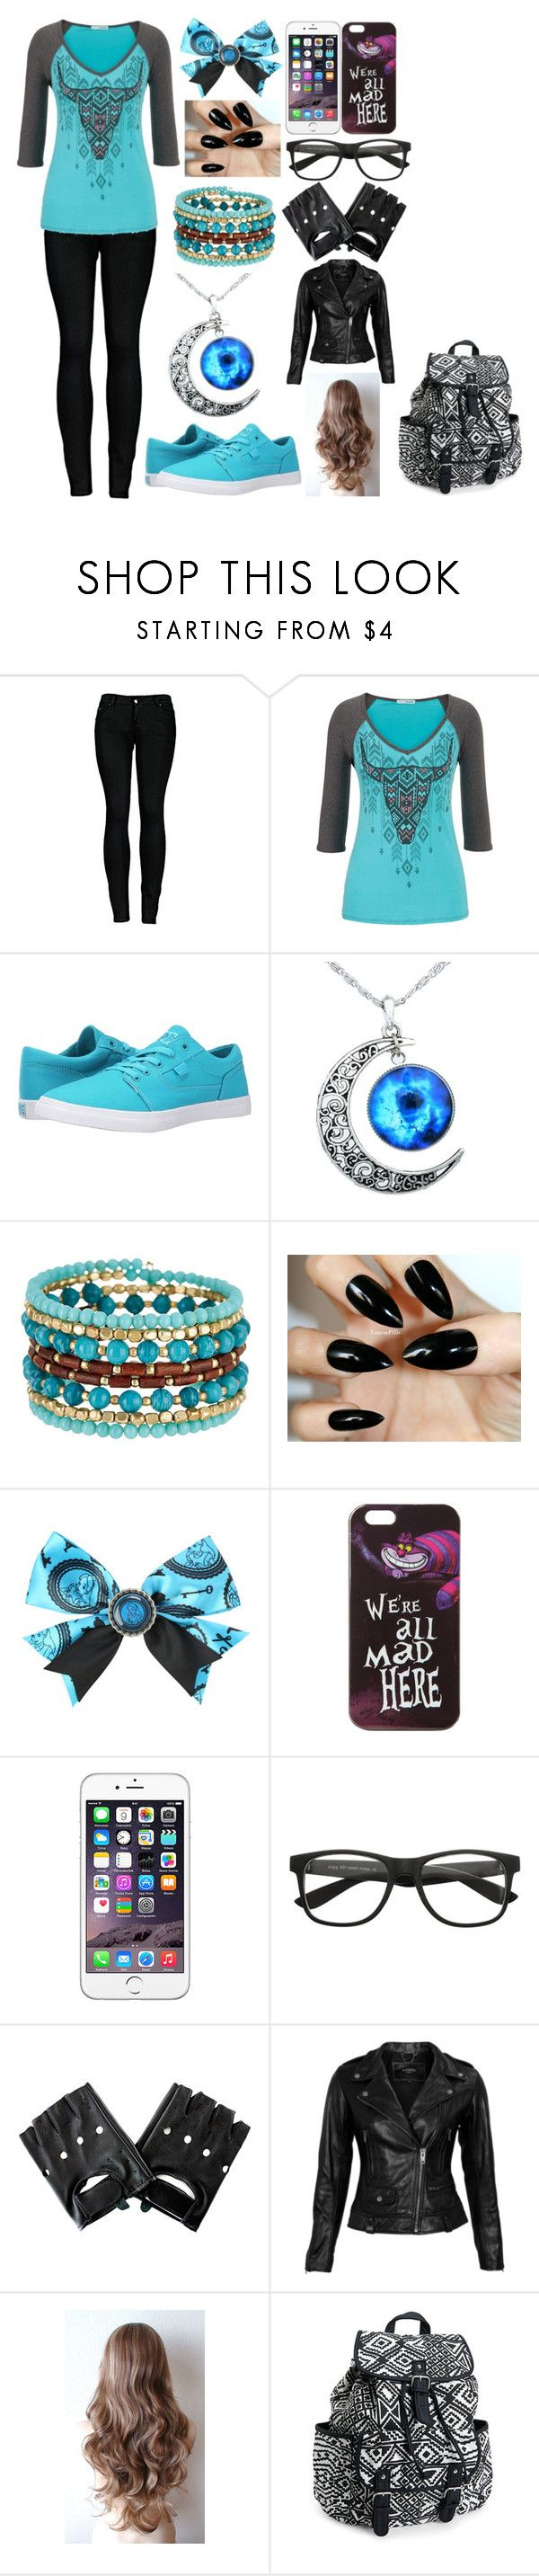 """Black and Blue"" by kiara-fleming ❤ liked on Polyvore featuring 2LUV, maurices, DC Shoes, Madison Parker, Disney, VIPARO and Aéropostale"